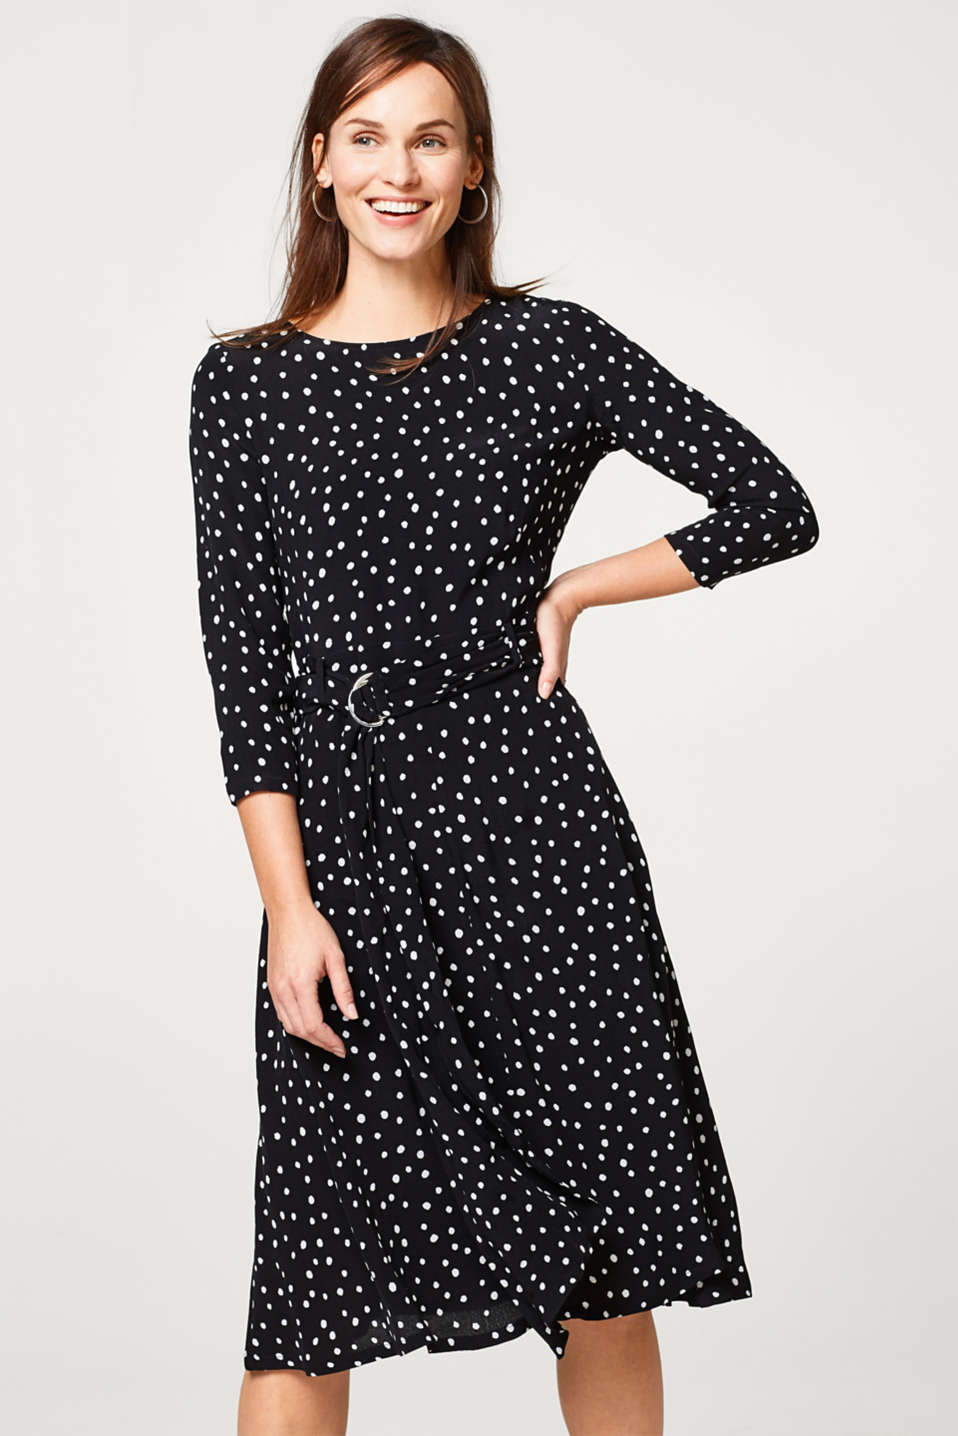 Esprit - Whimsical dress with polka dots